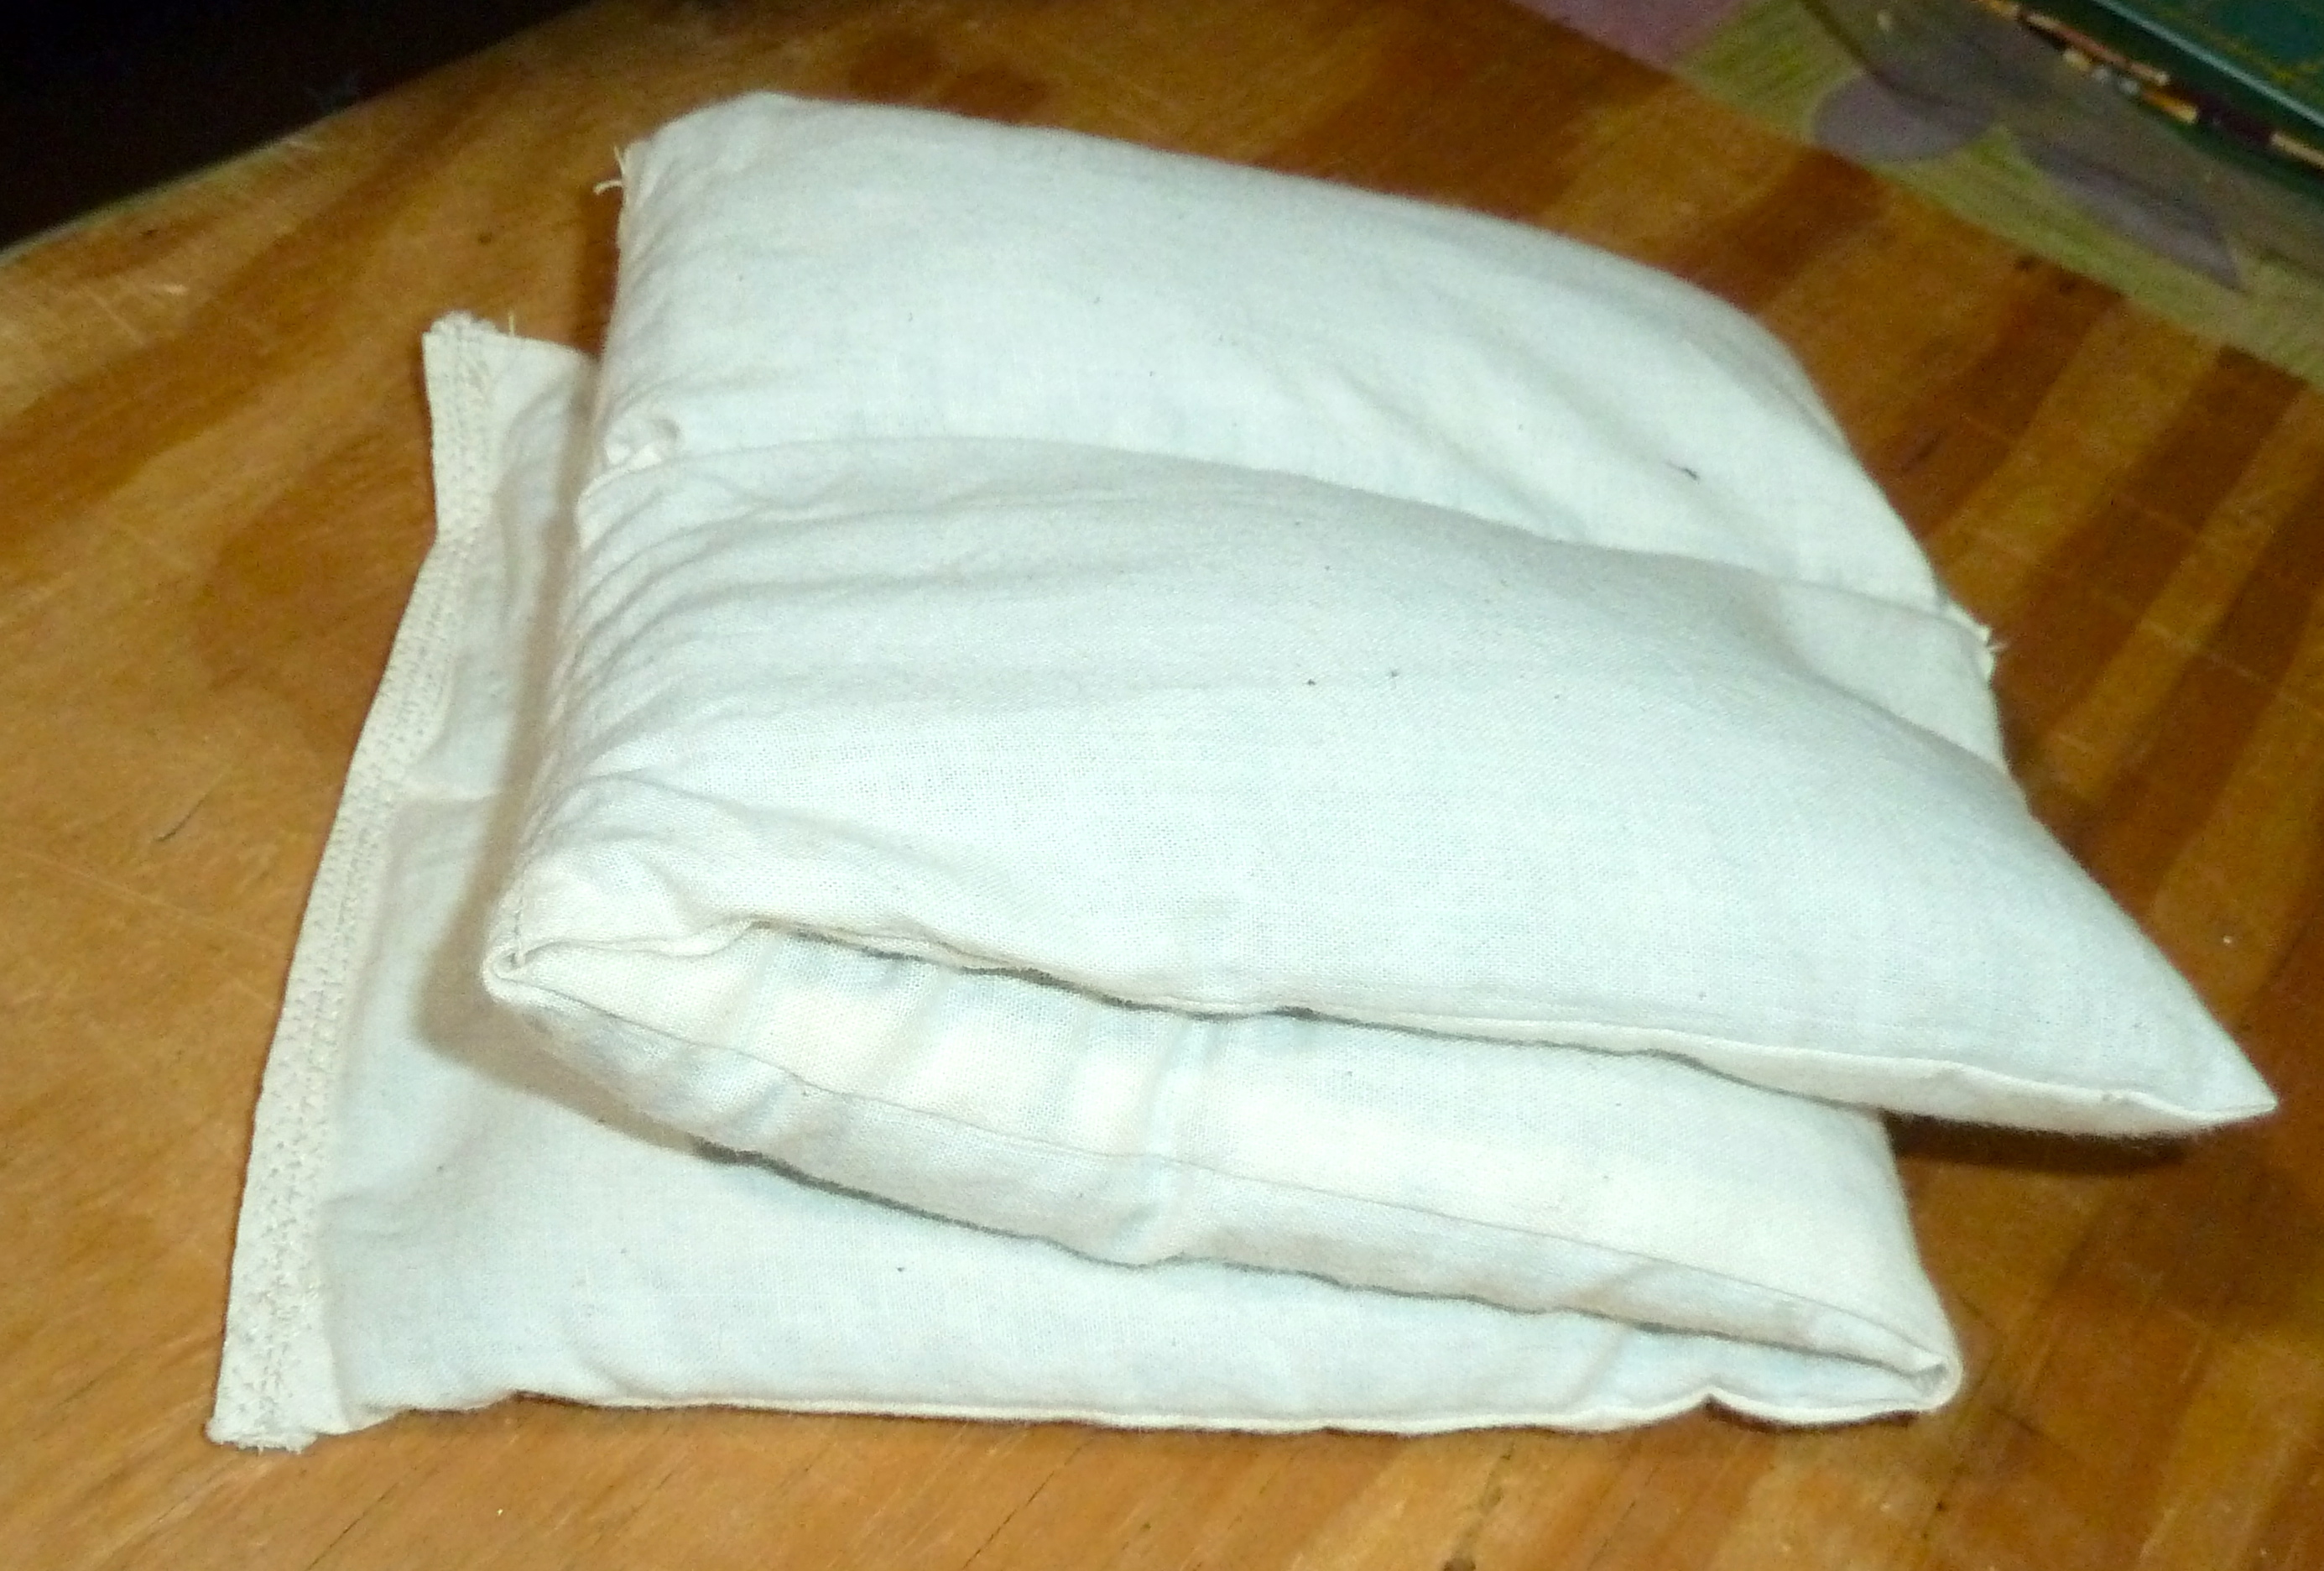 About The Pillow Covers And Inner Buckwheat Seed Pillows